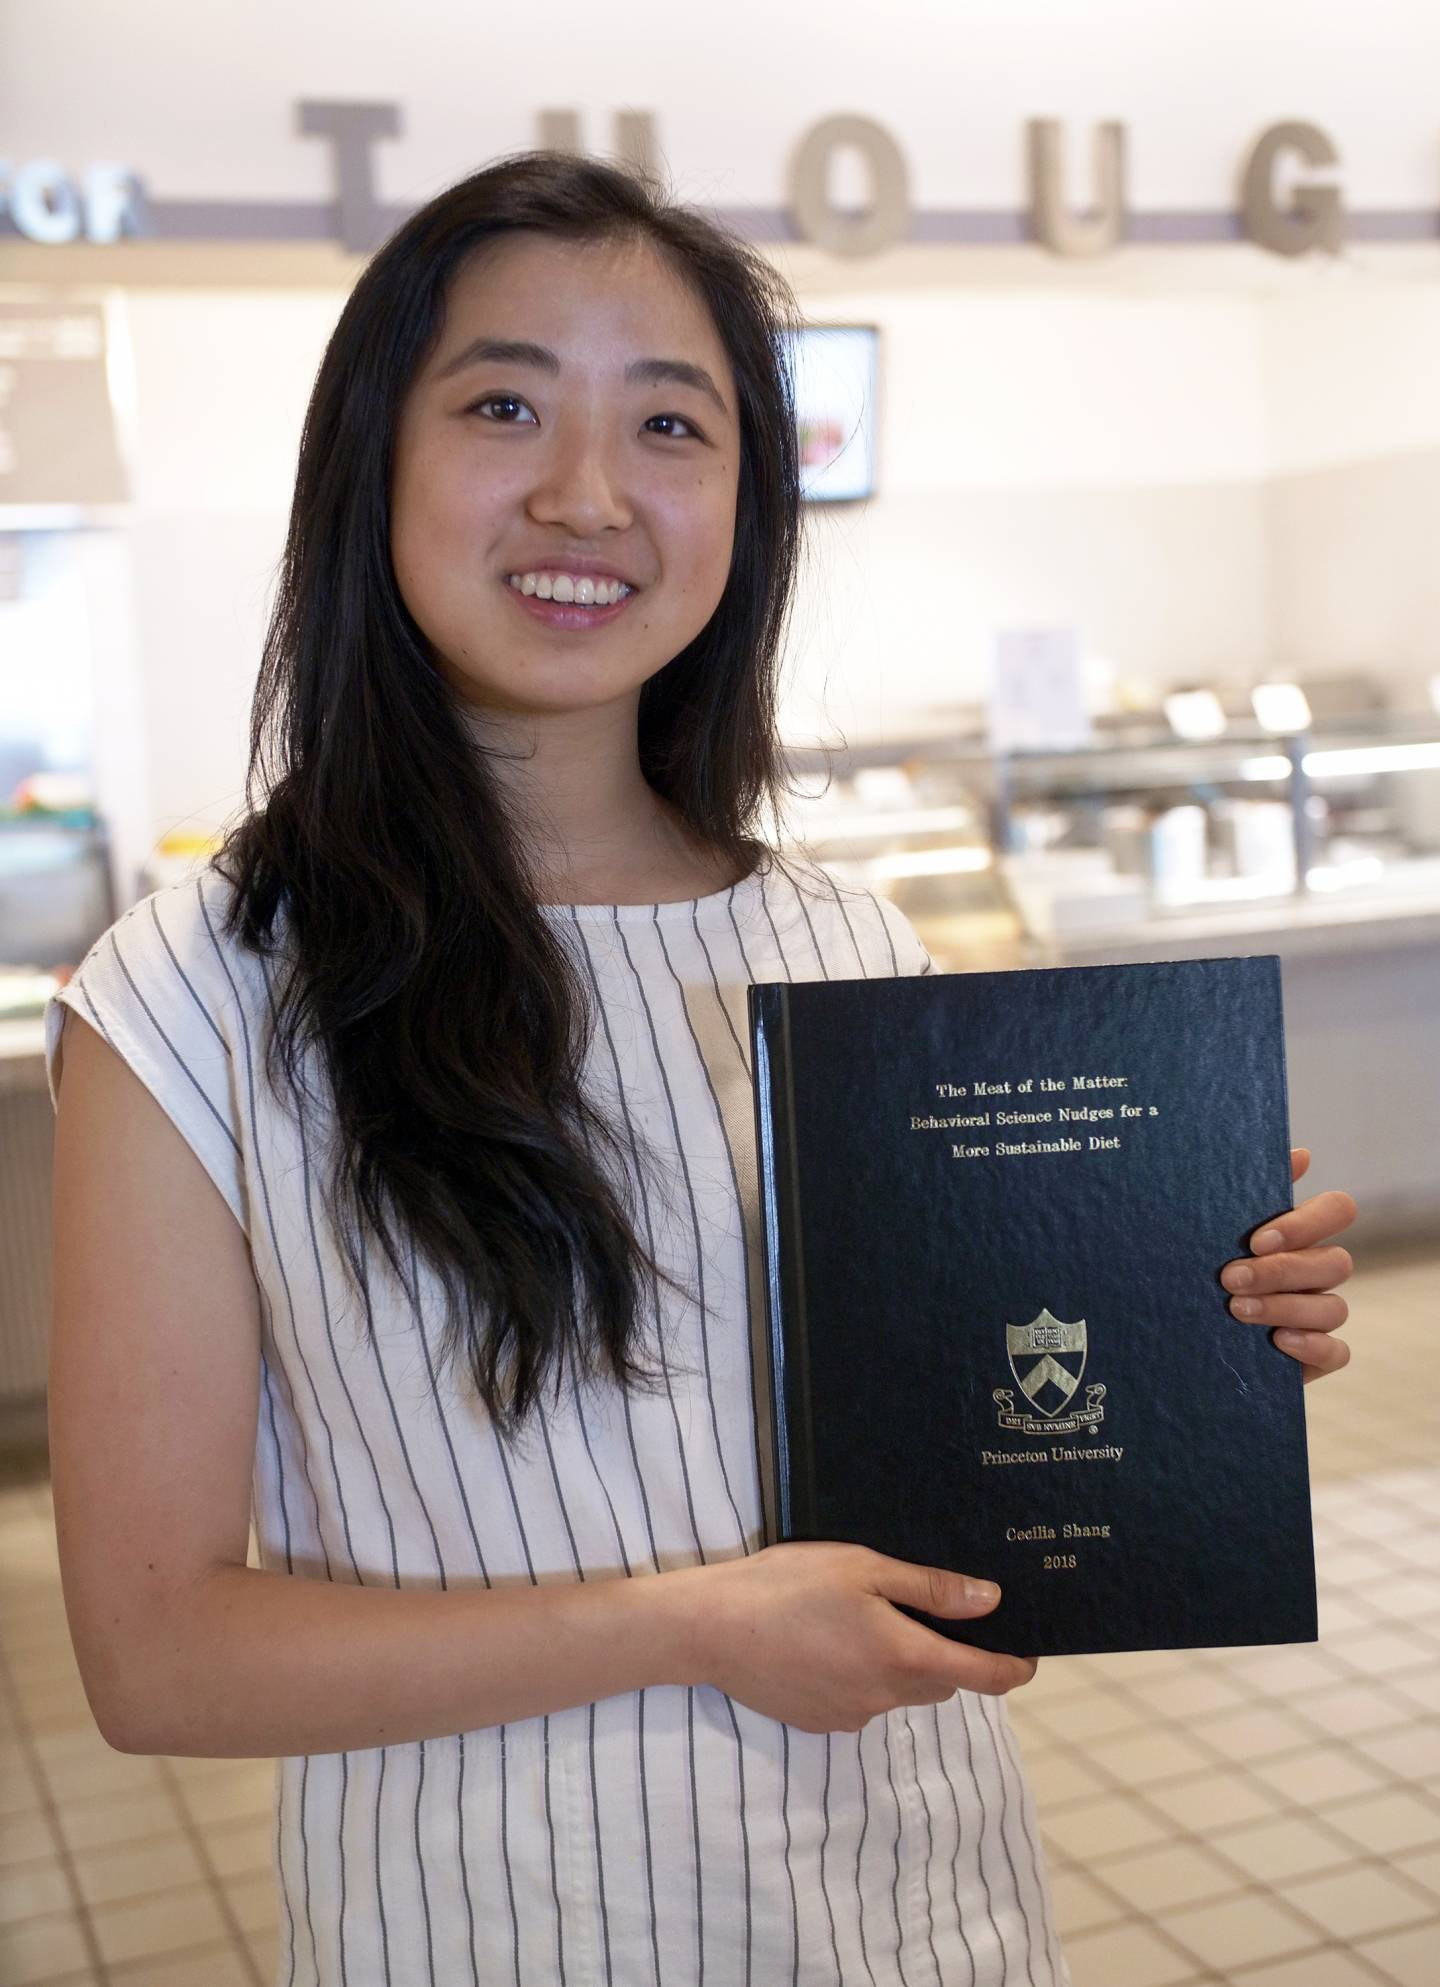 Cecilia Shang with her thesis